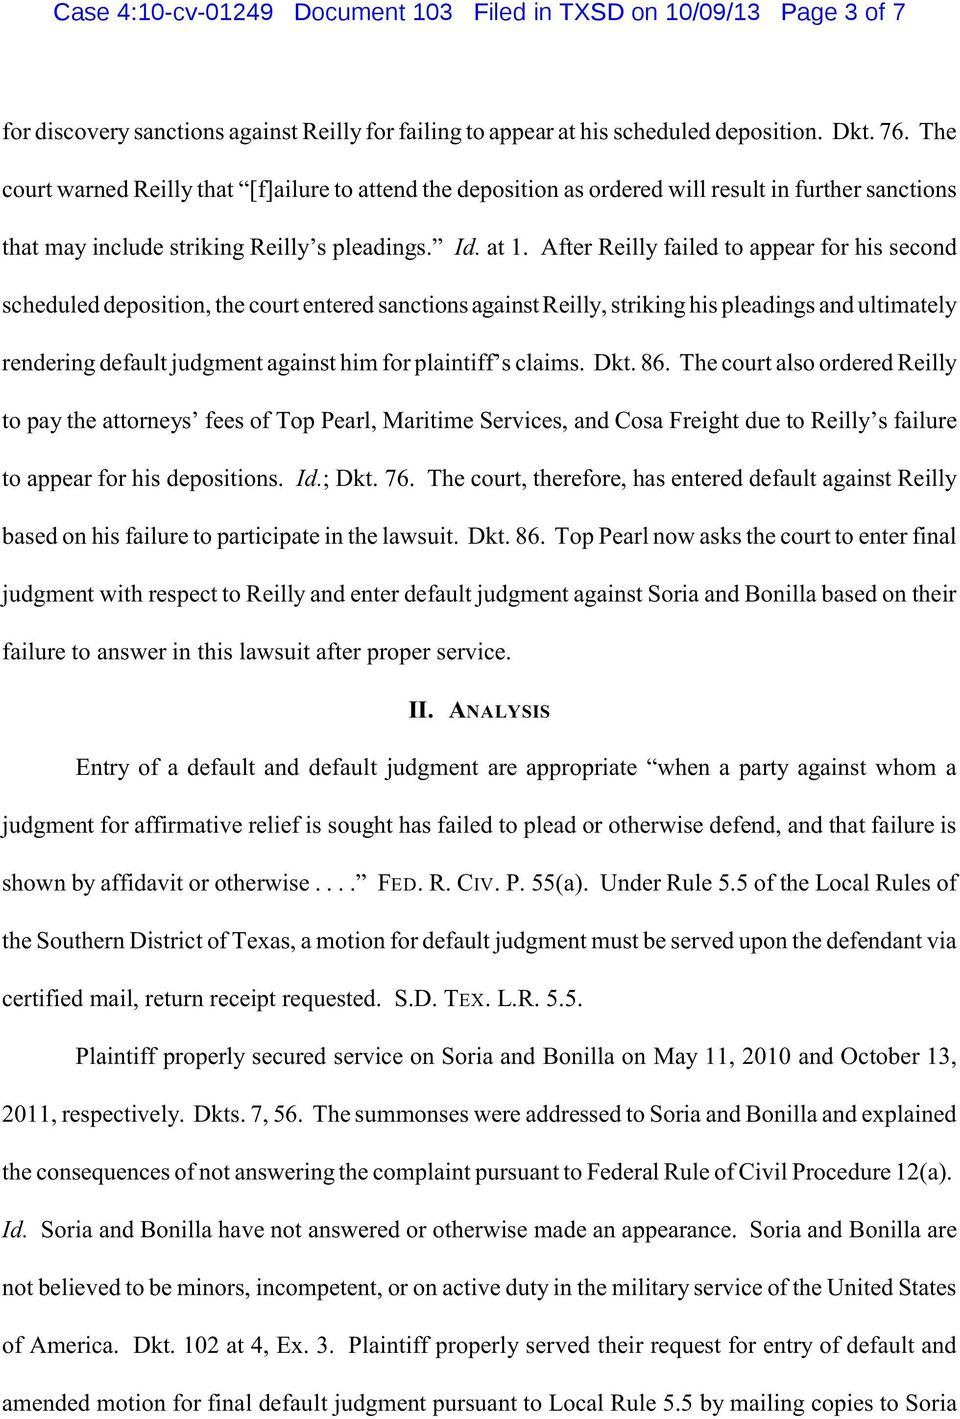 After Reilly failed to appear for his second scheduled deposition, the court entered sanctions against Reilly, striking his pleadings and ultimately rendering default judgment against him for